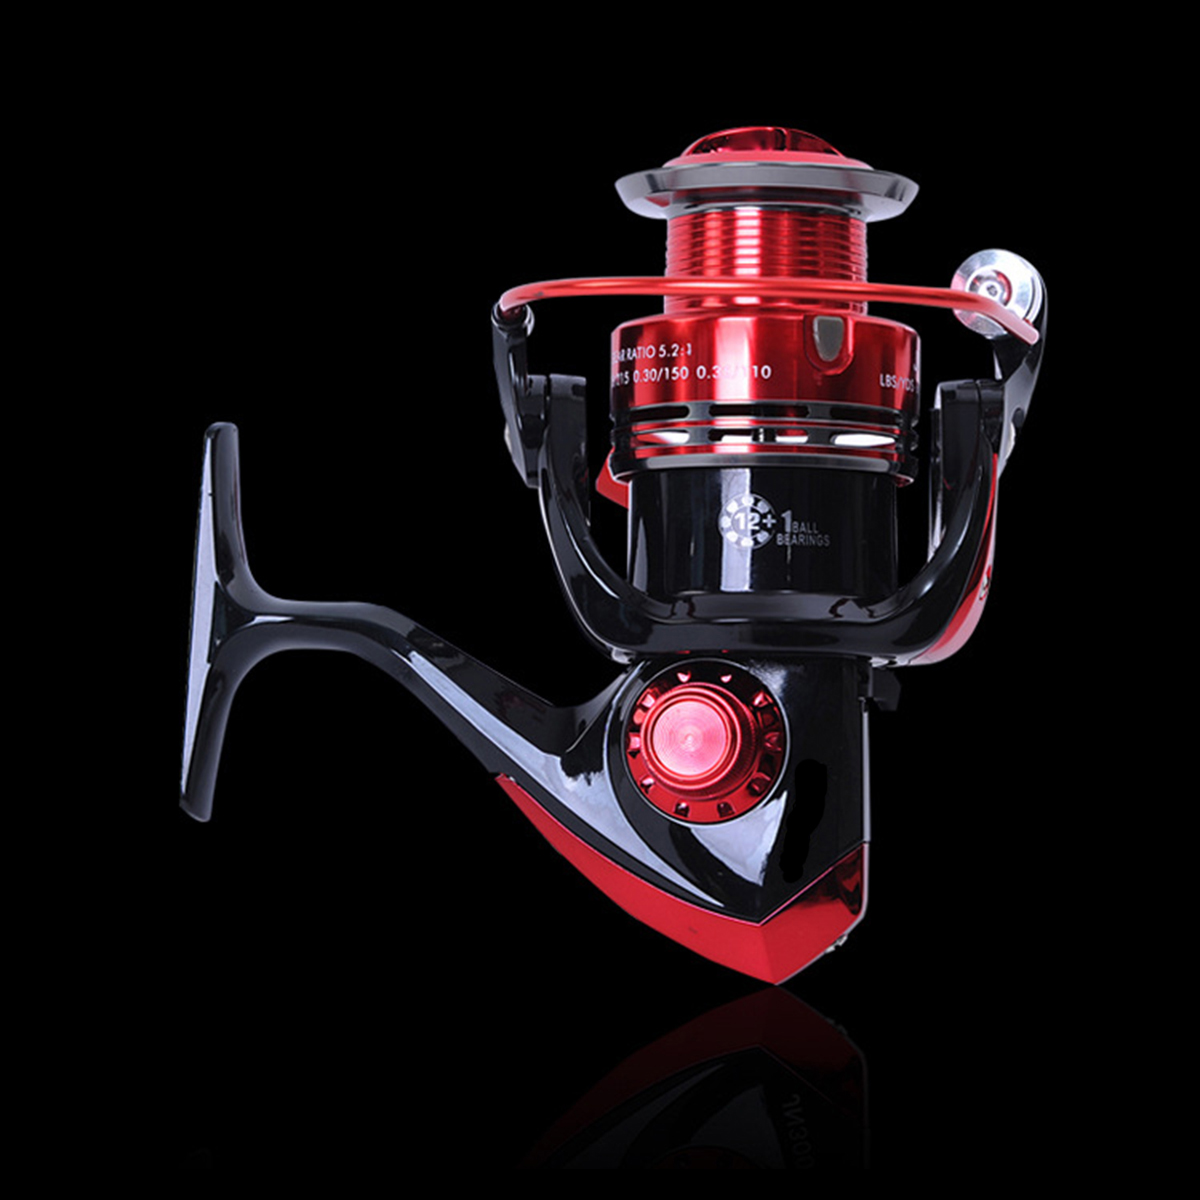 ZANLURE JM1000 12+1BB 5.2:1 Spinning Fishing Reel Right/Left Interchangeable Saltwater Reel